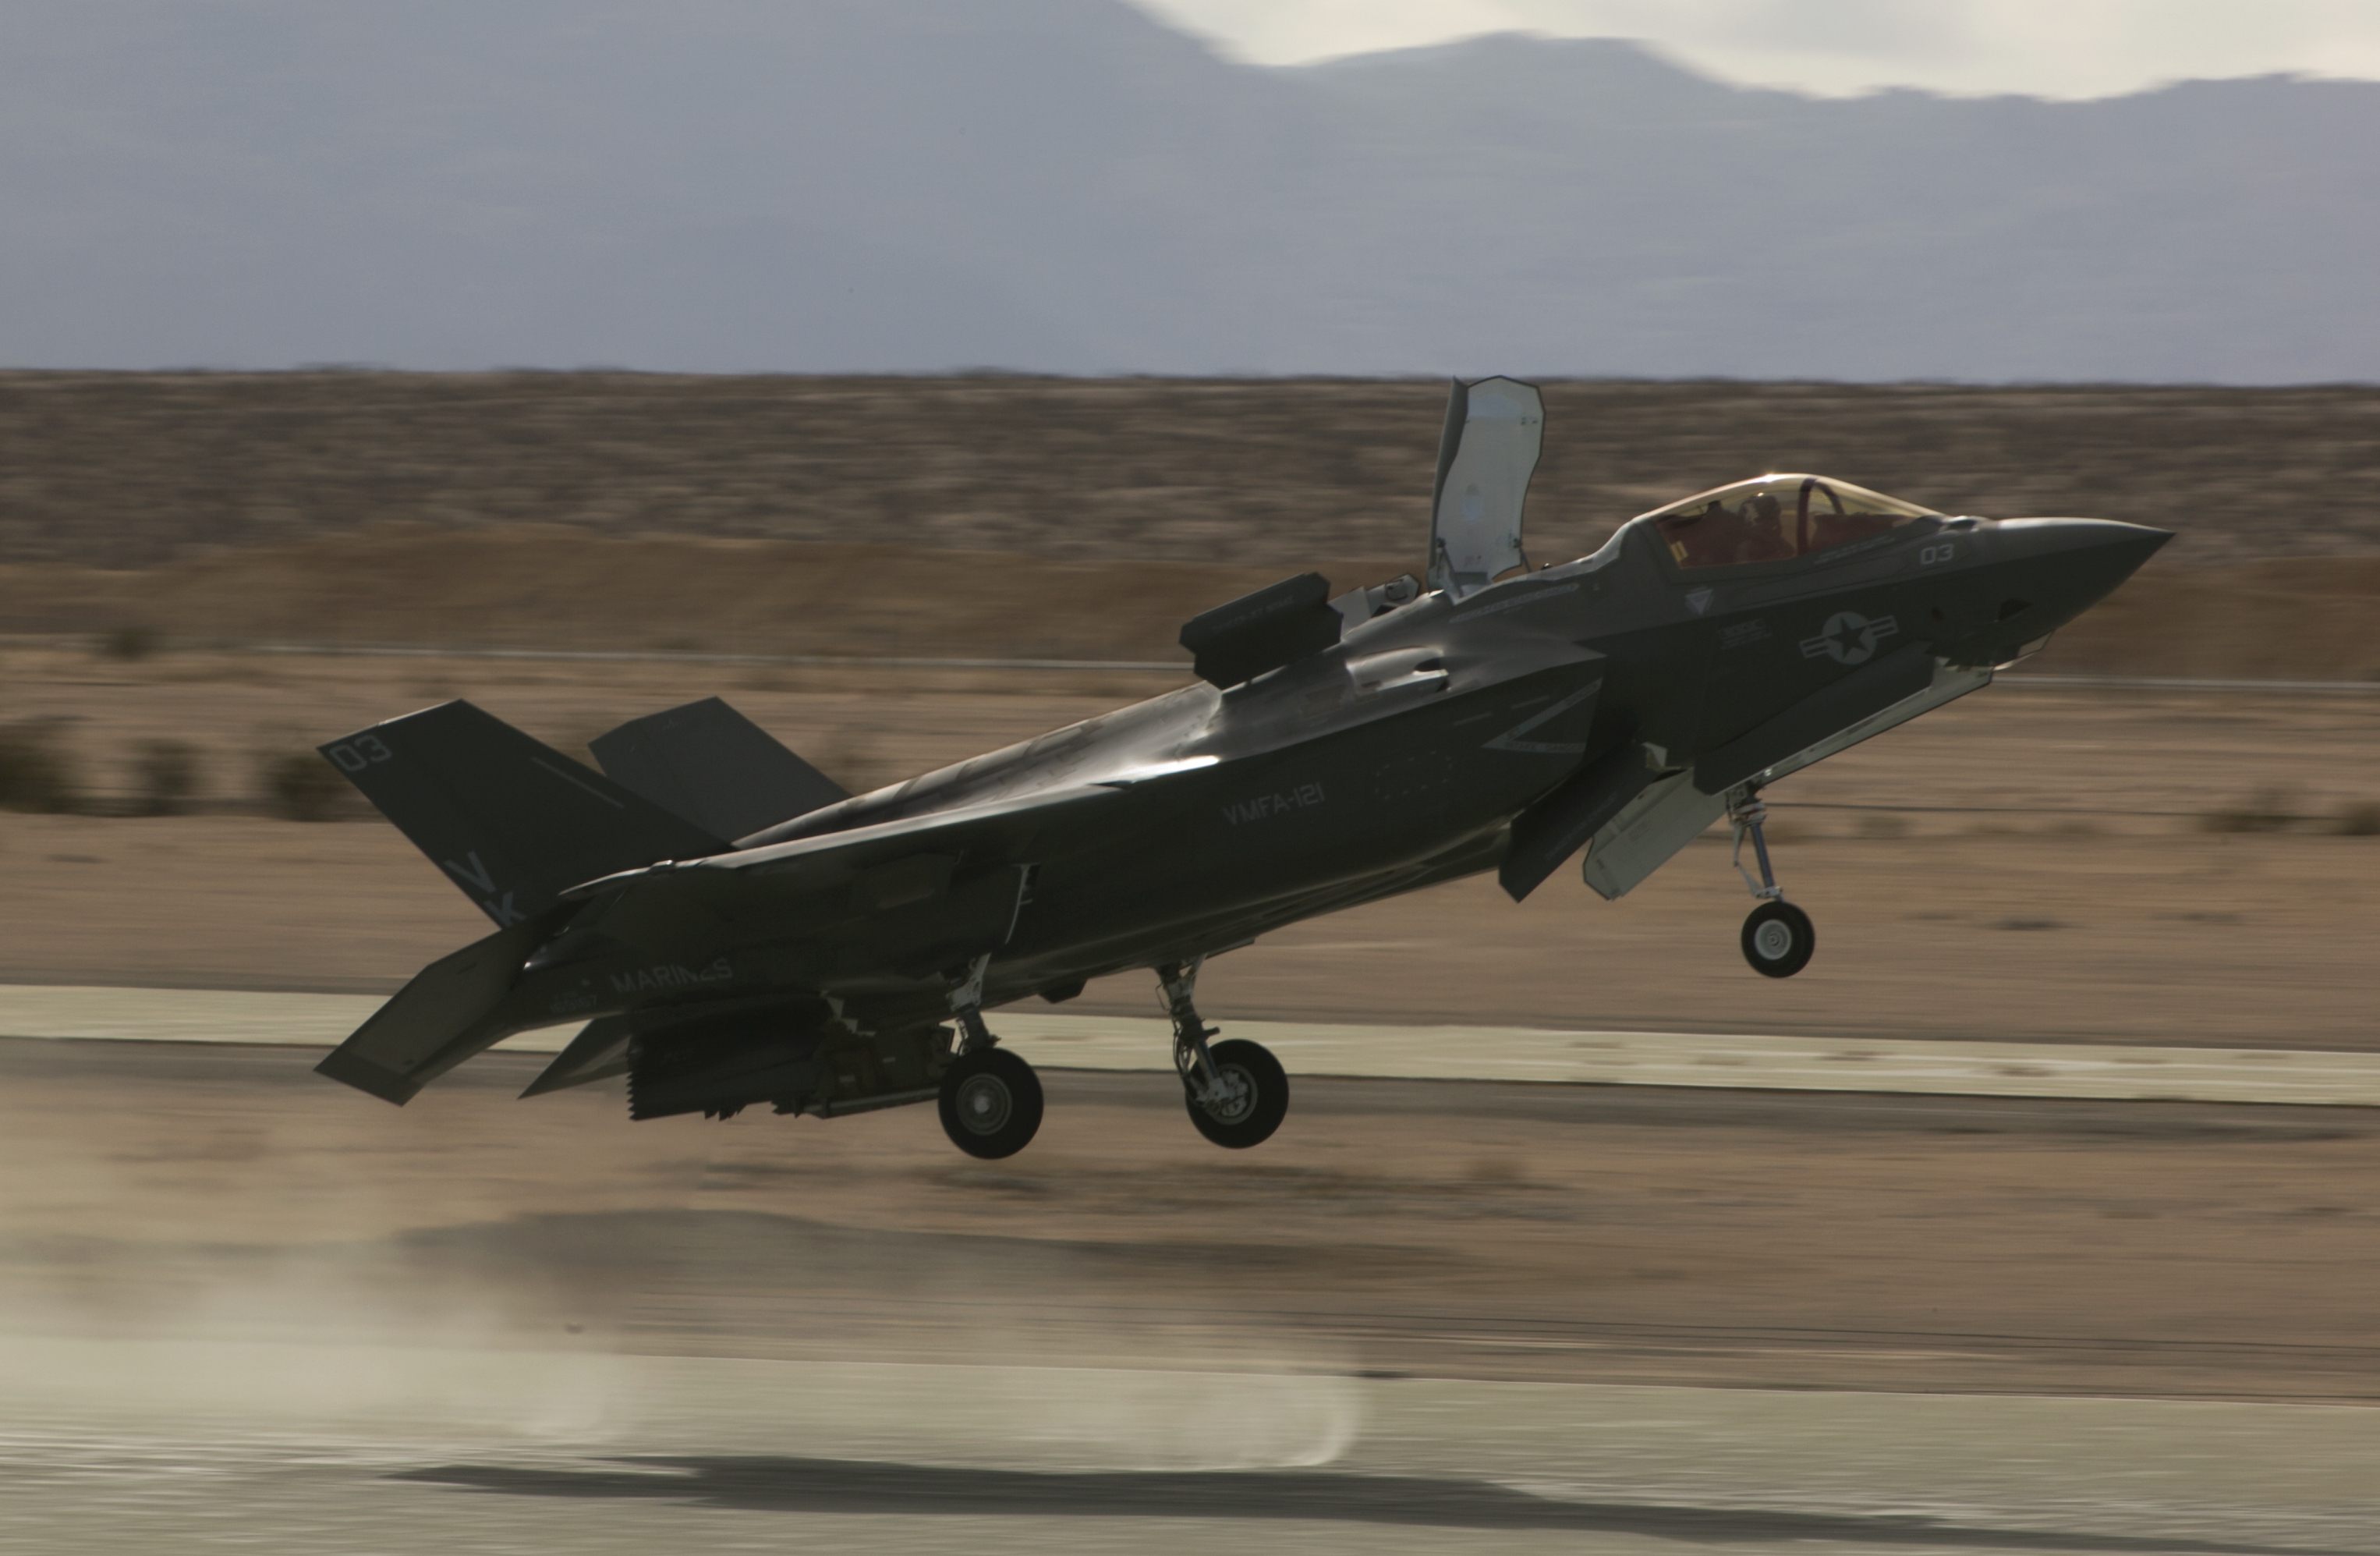 An F-35B Lightning II Joint Strike Fighter, Marine Fighter Attack Squadron 121, 3rd Marine Aircraft Wing, performs a conventional take-off on Dec. 11, 2015. US Marine Corps Photo